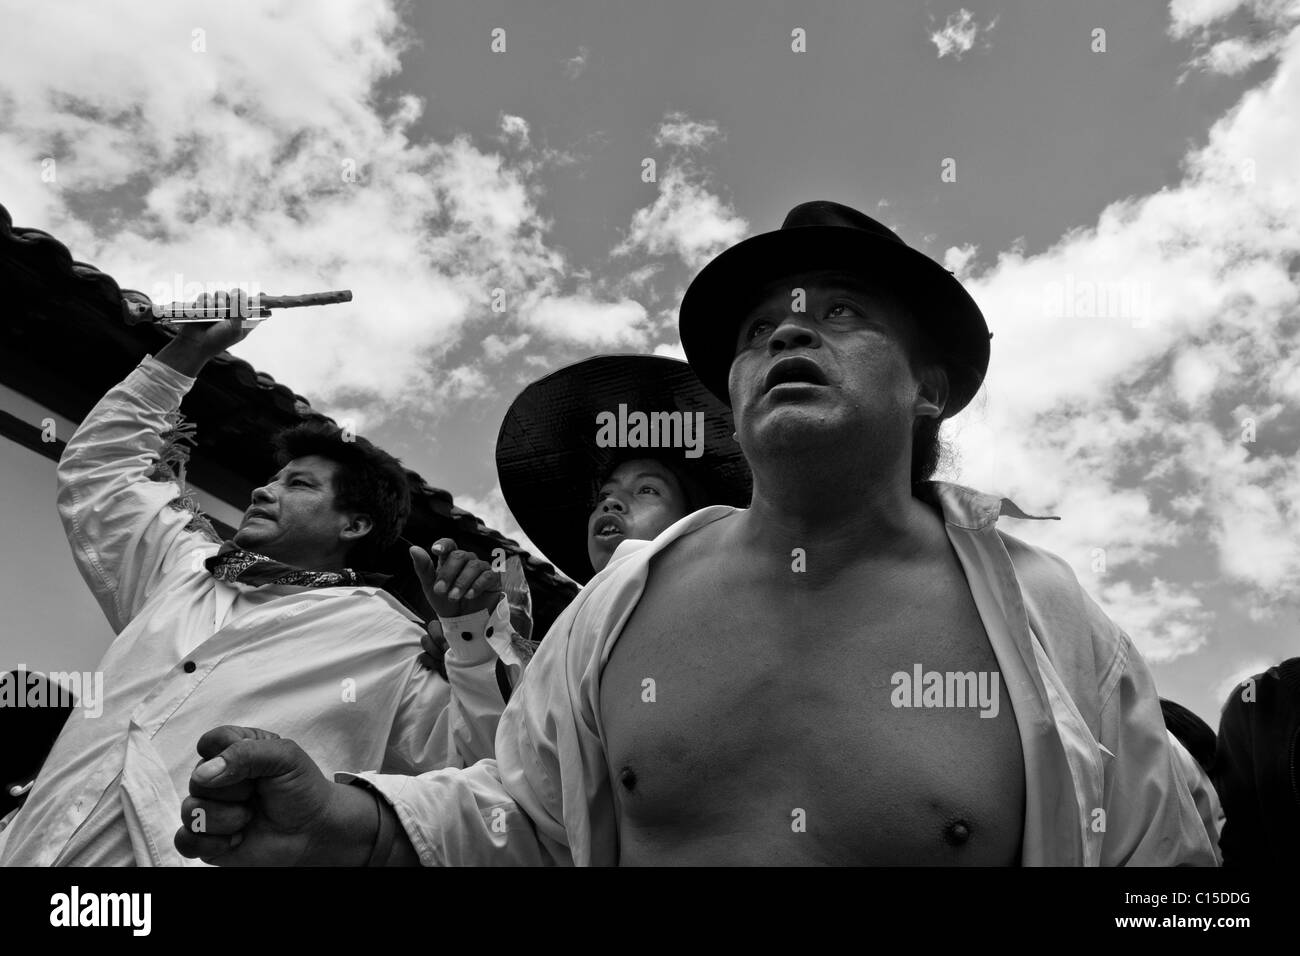 Indians, wearing white shirts, dance and shout during the Inti Raymi (San Juan) festivities in Cotacachi, Ecuador. - Stock Image